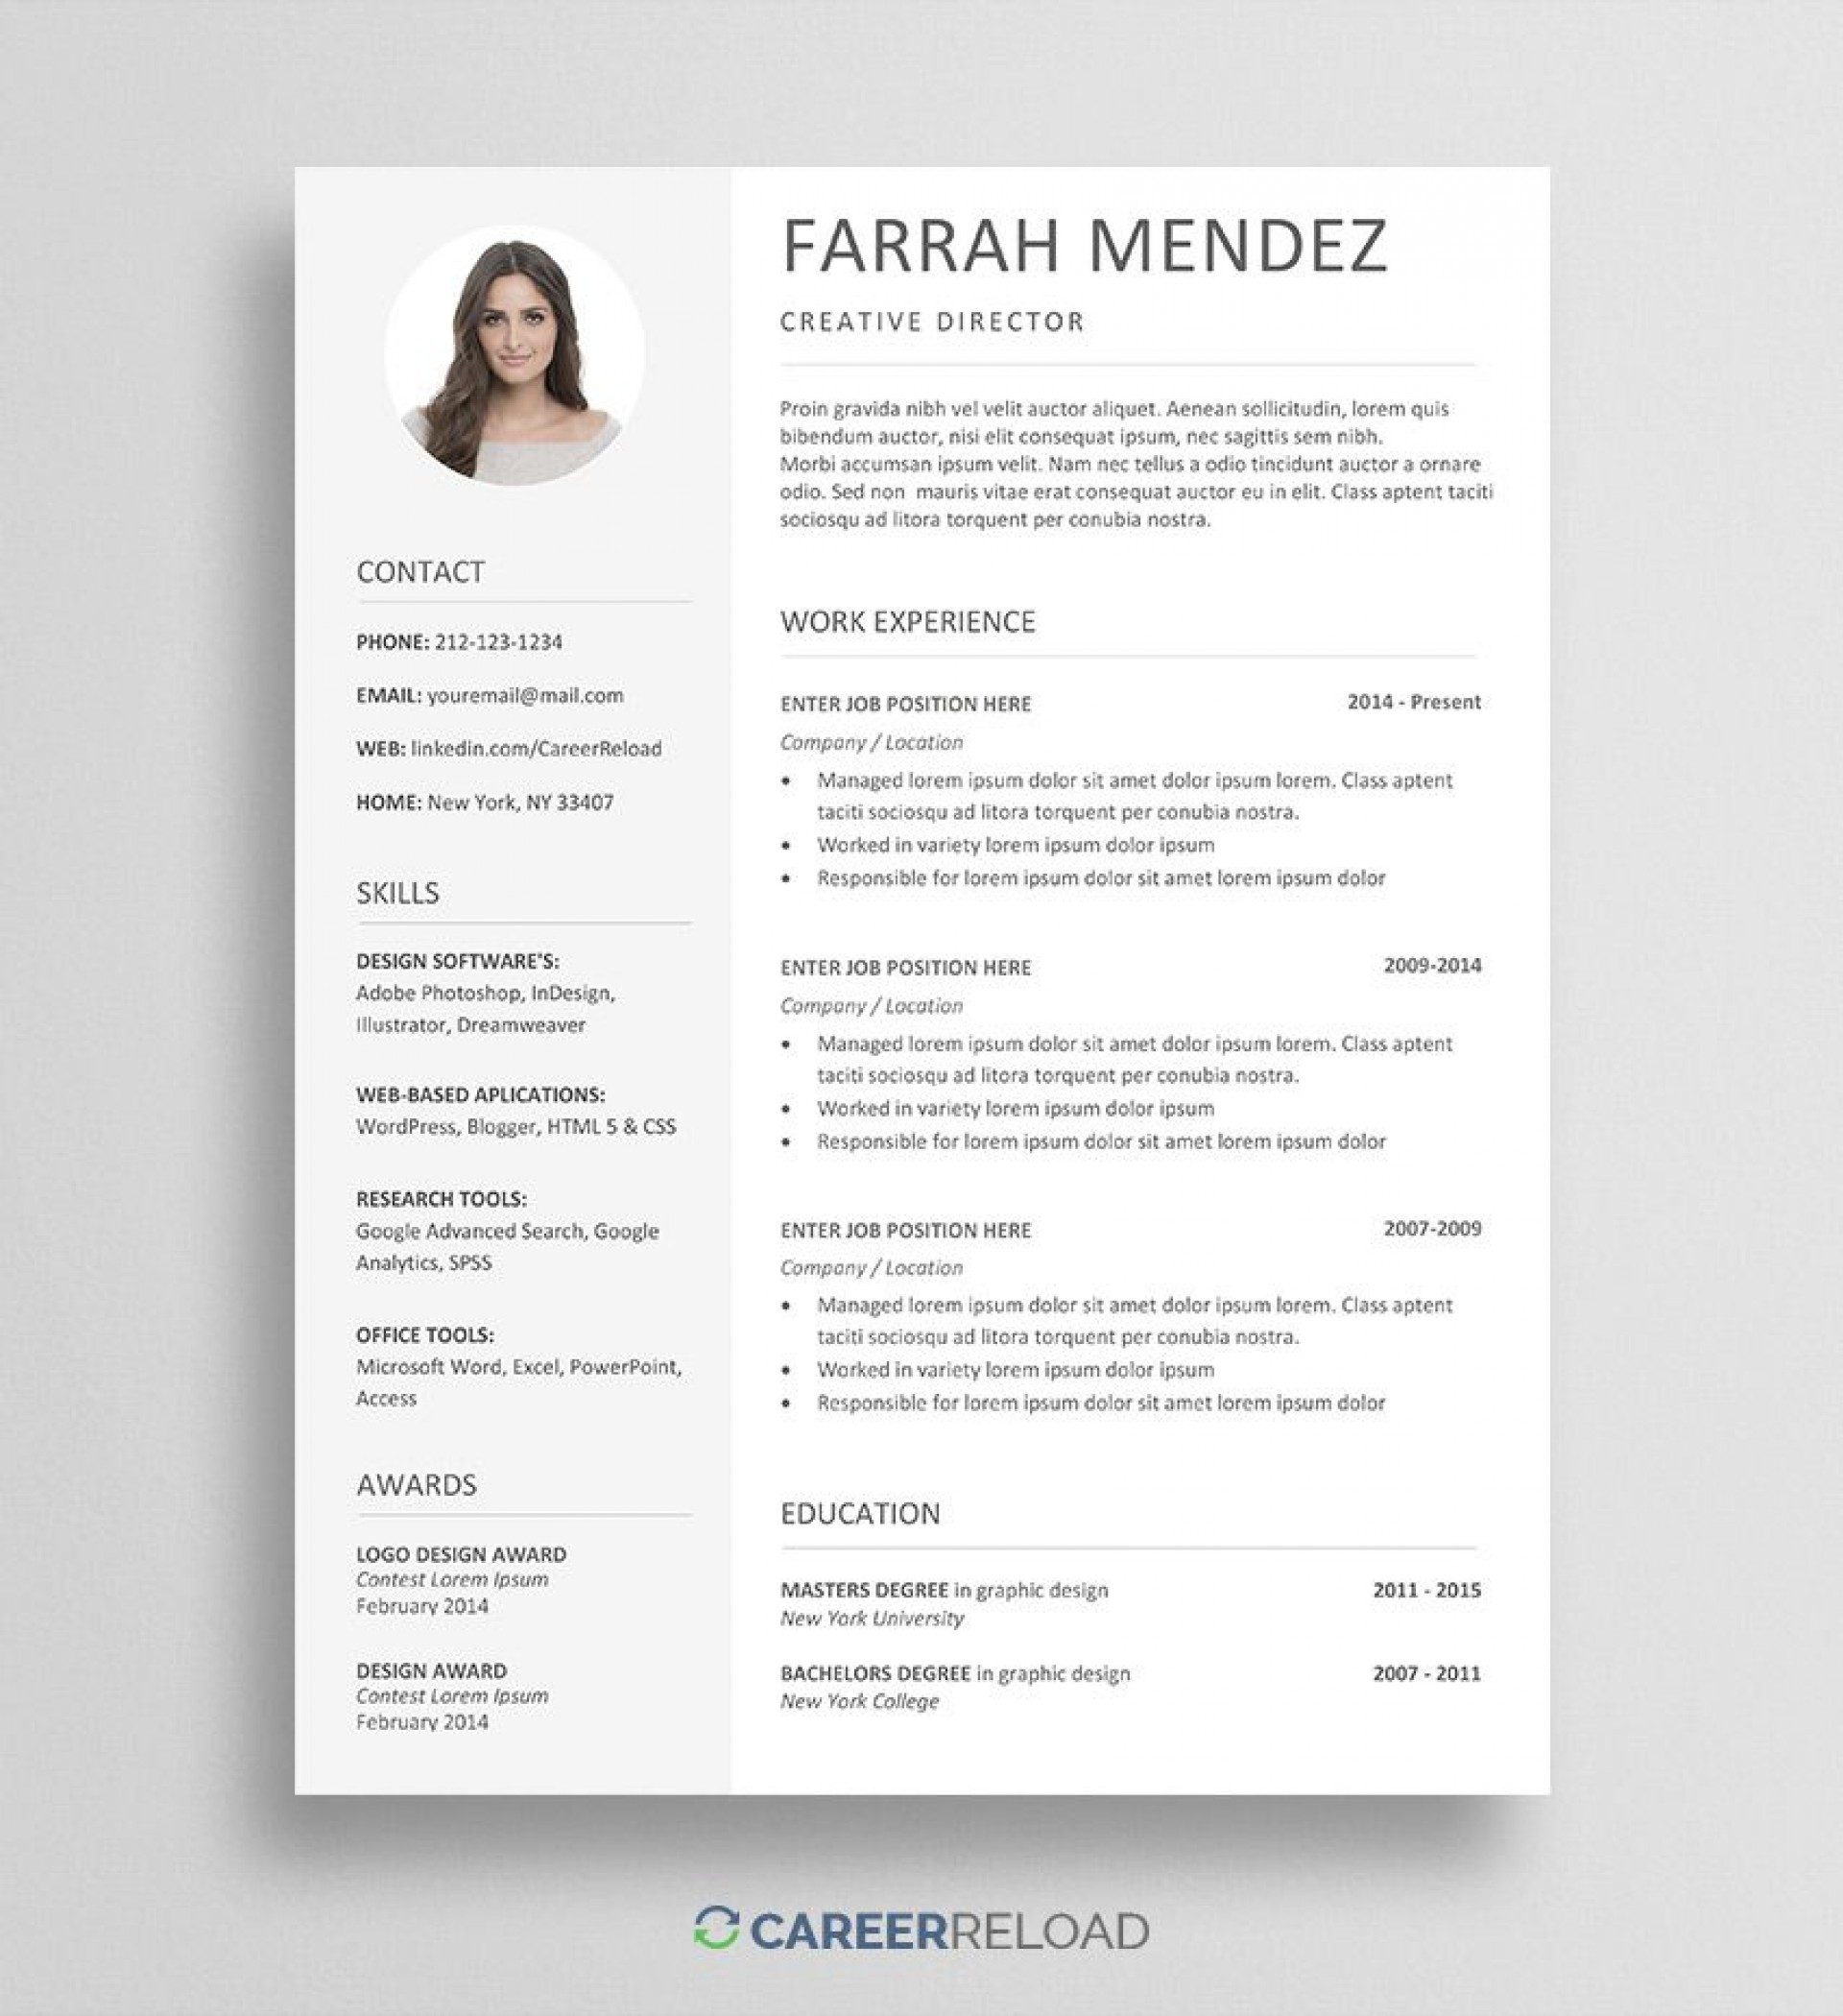 004 Awful Photoshop Resume Template Free Download Highest Quality  Creative Cv Psd1920